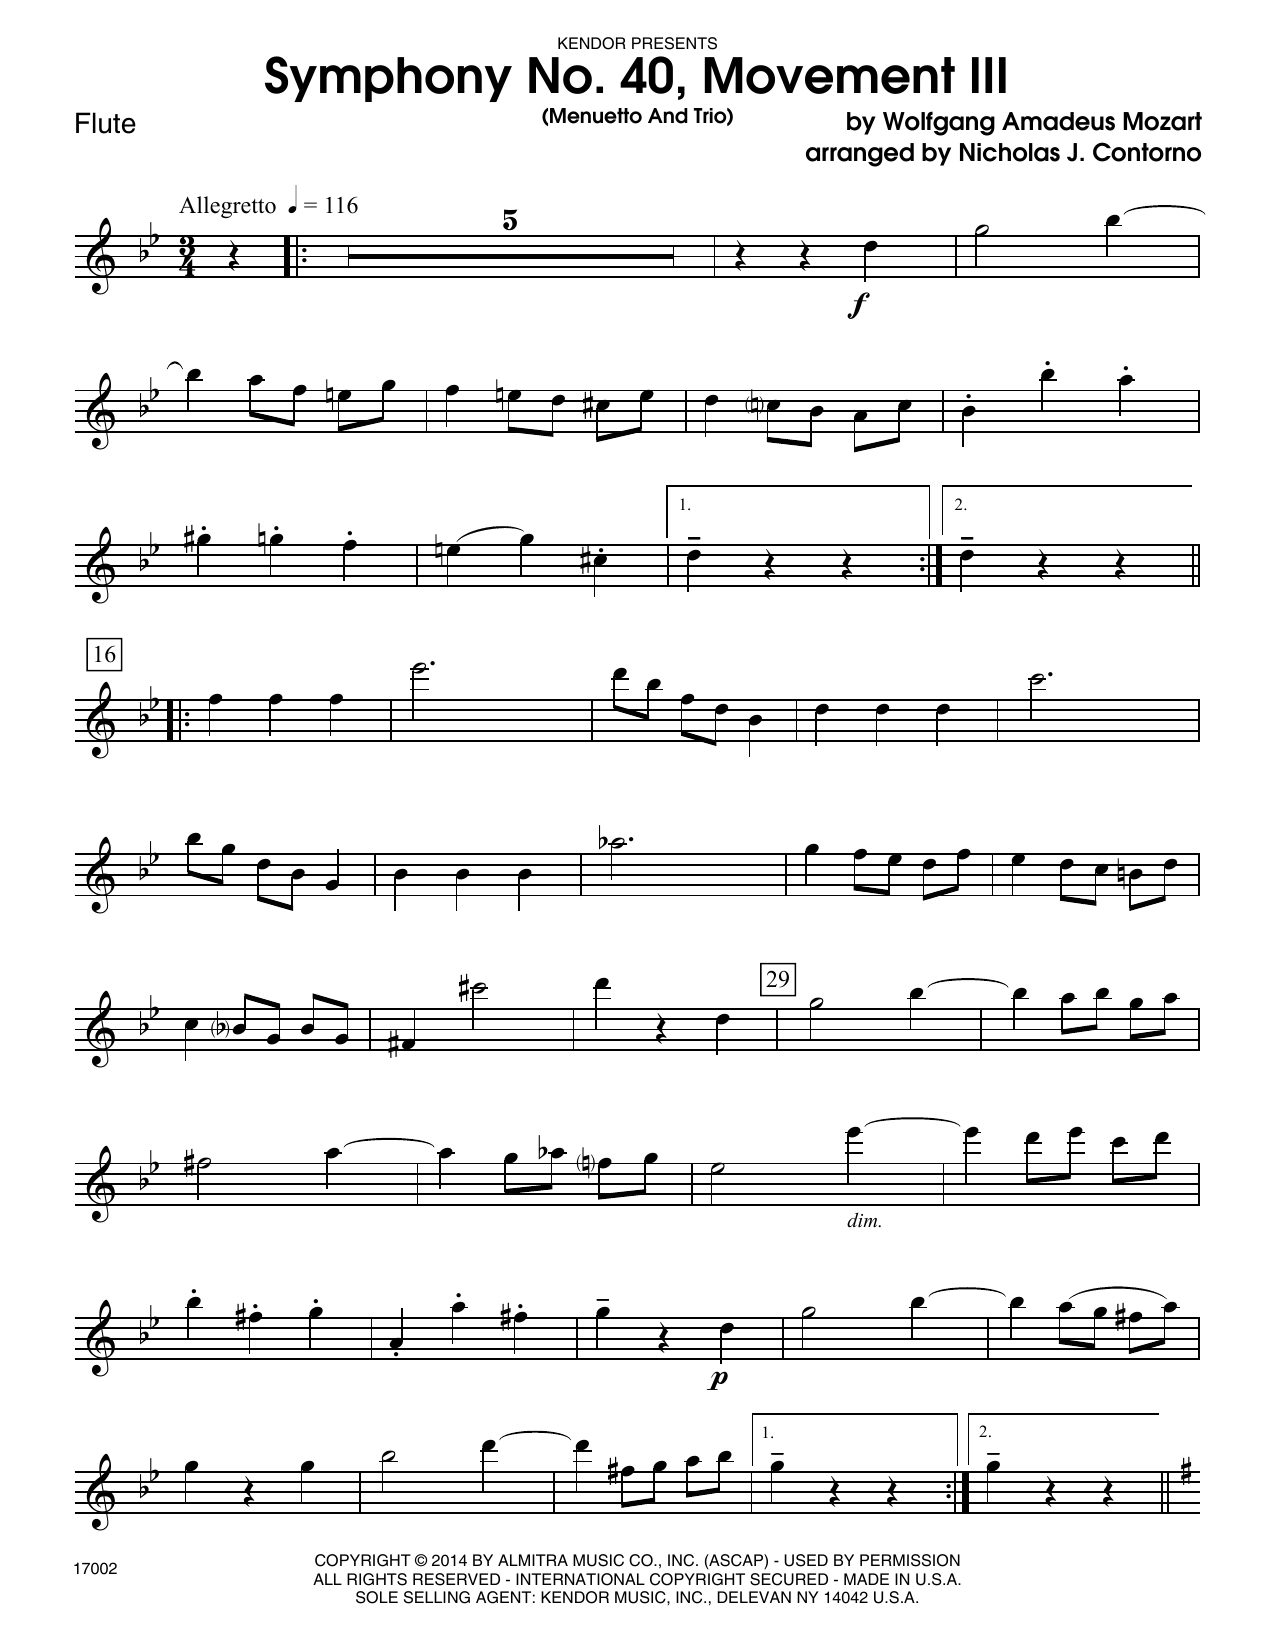 Symphony No. 40, Movement III (Menuetto And Trio) - Flute Sheet Music